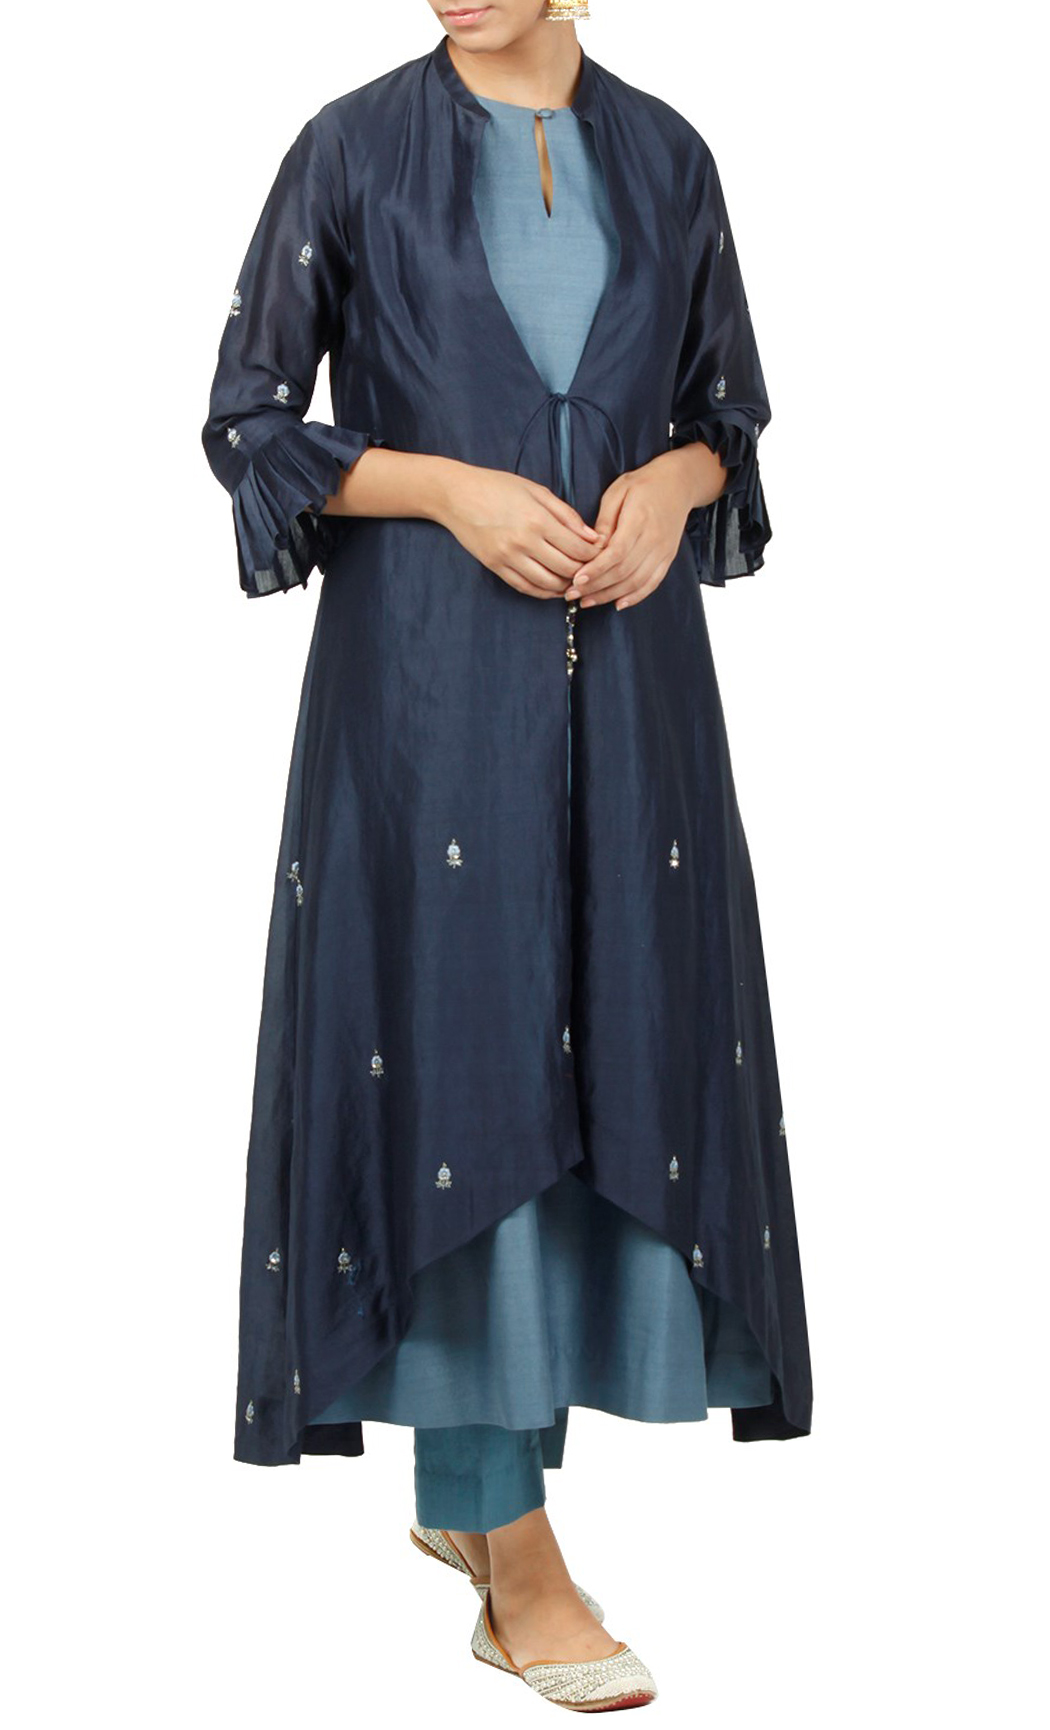 Tea Tunic with a Navy Blue Jacket and Straight Pants - Buy Online